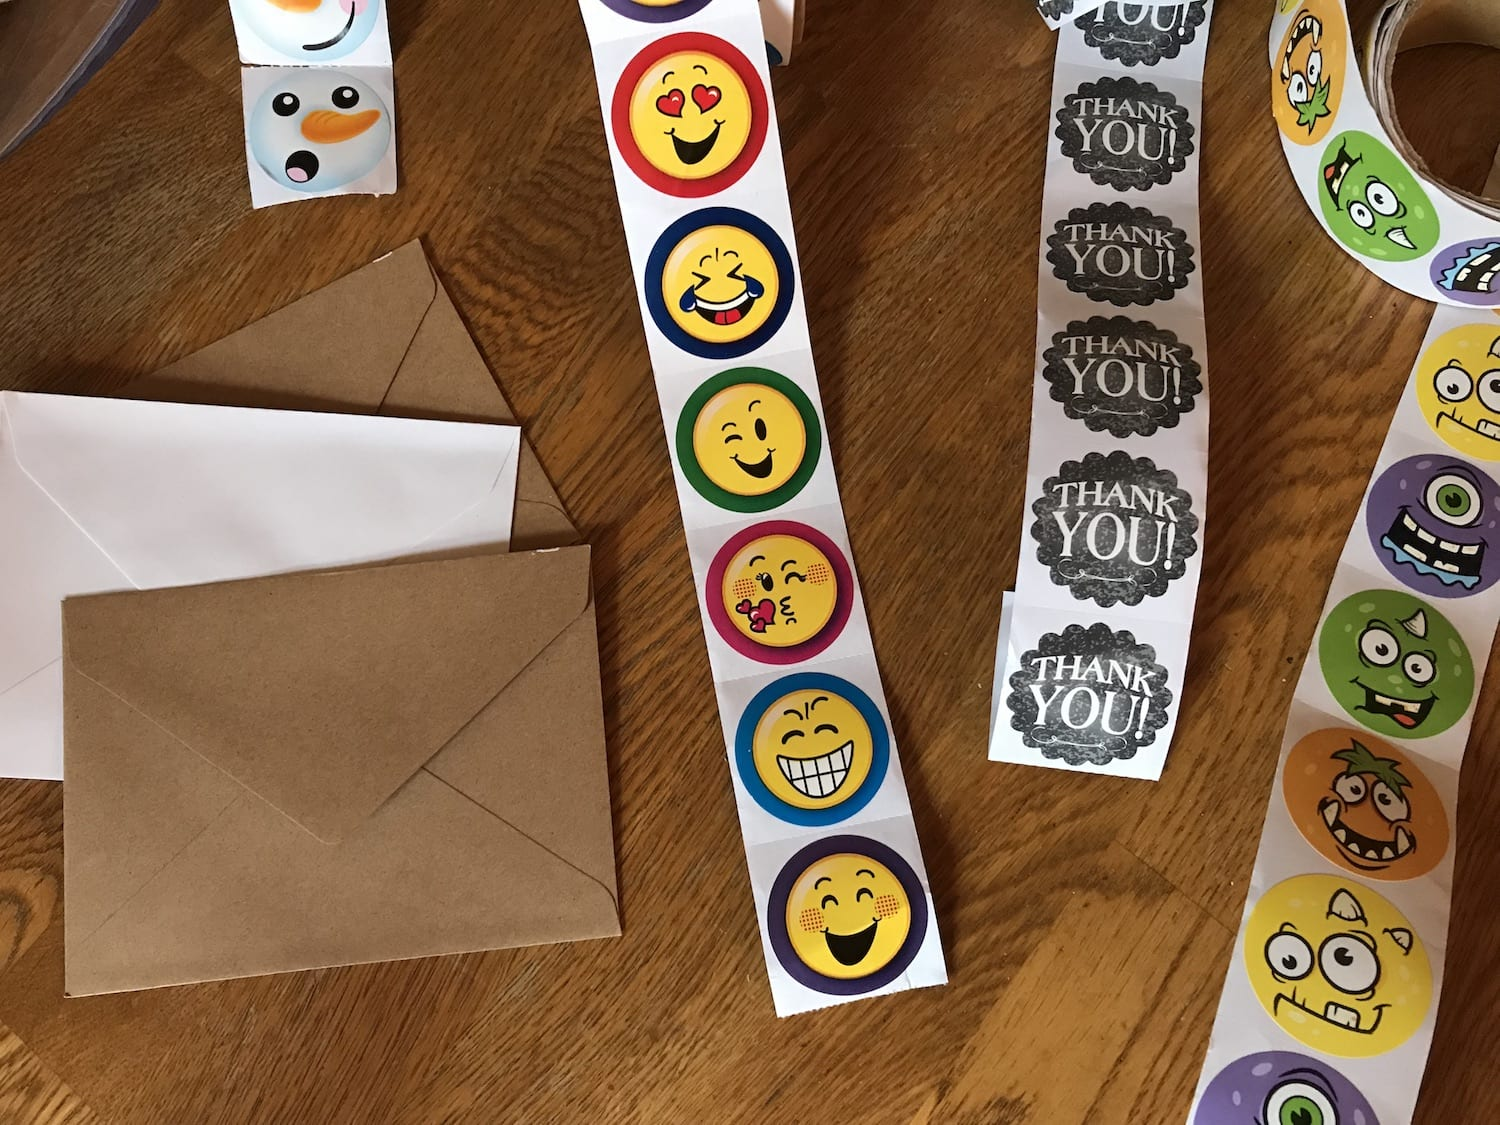 Use stickers to customize thank you notes.